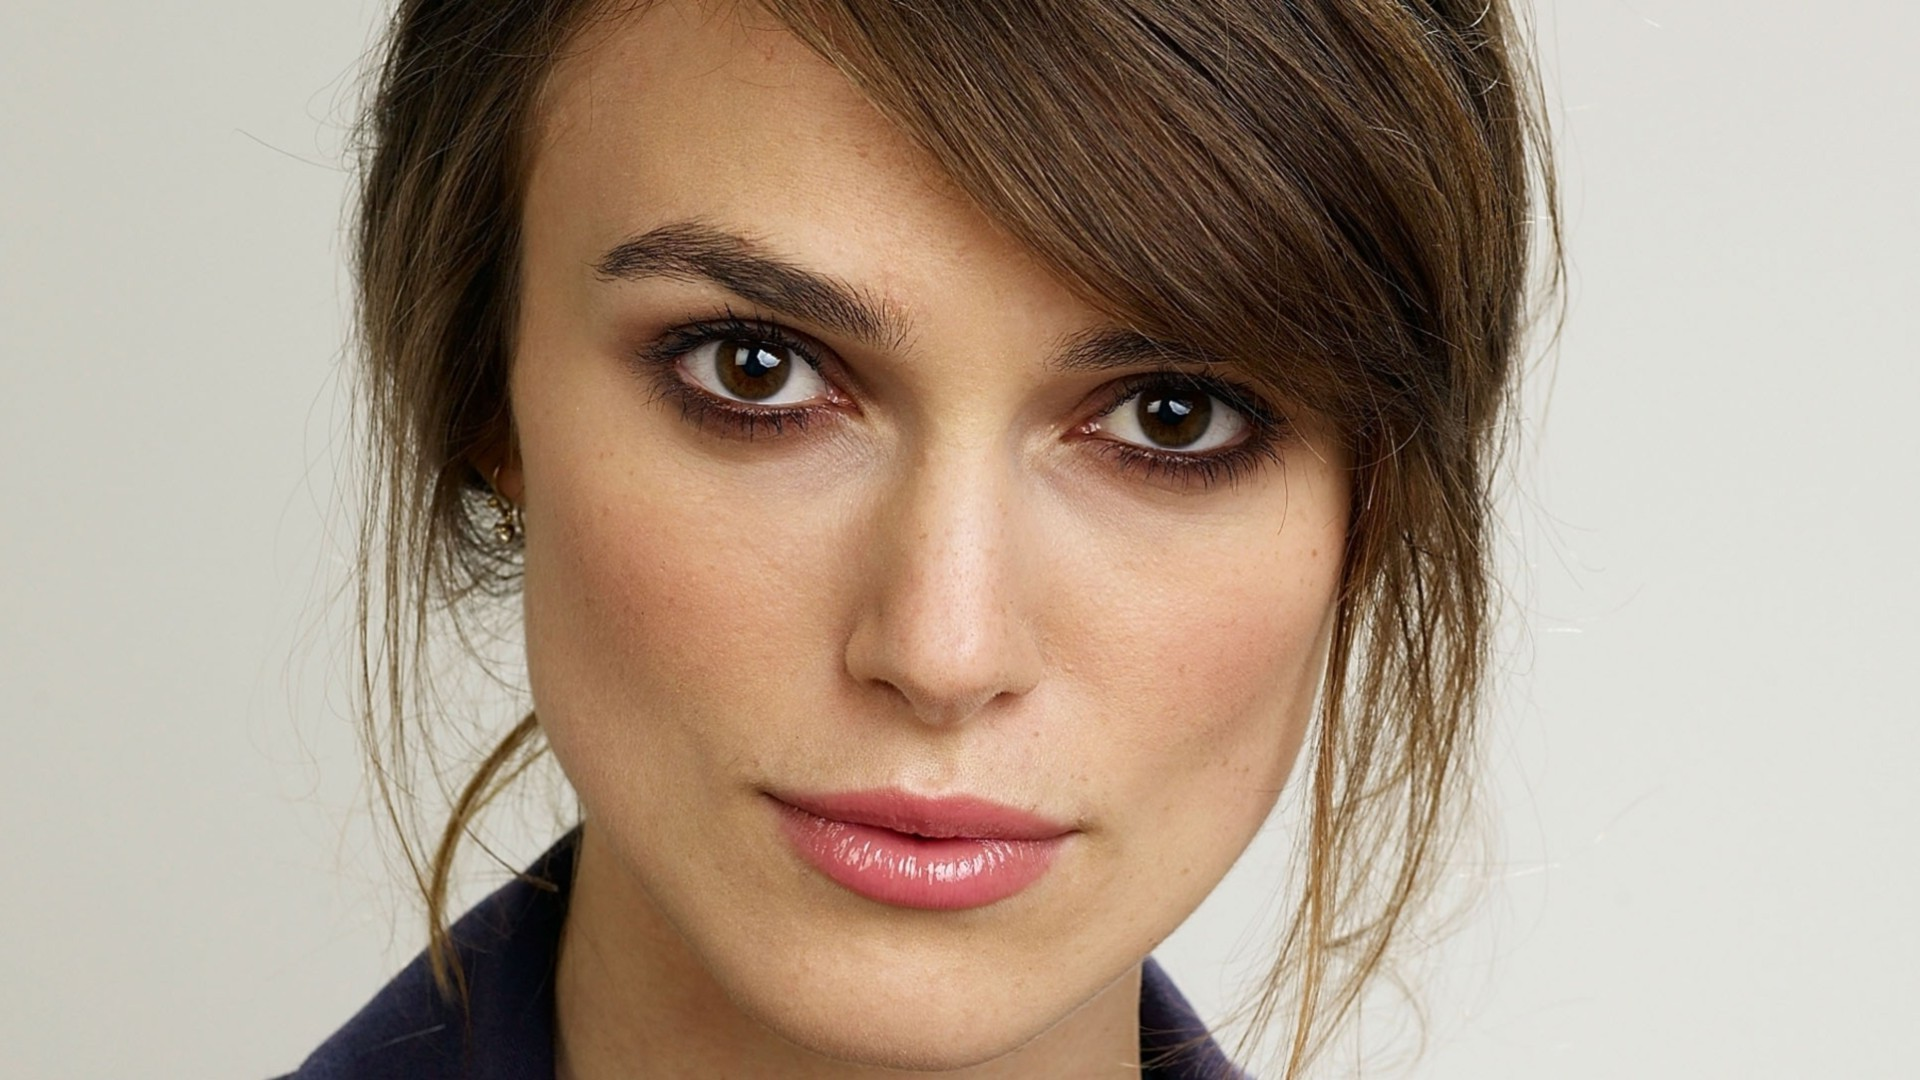 Dark Knight 3d Wallpaper Keira Knightley Wallpapers Hd Desktop And Mobile Backgrounds